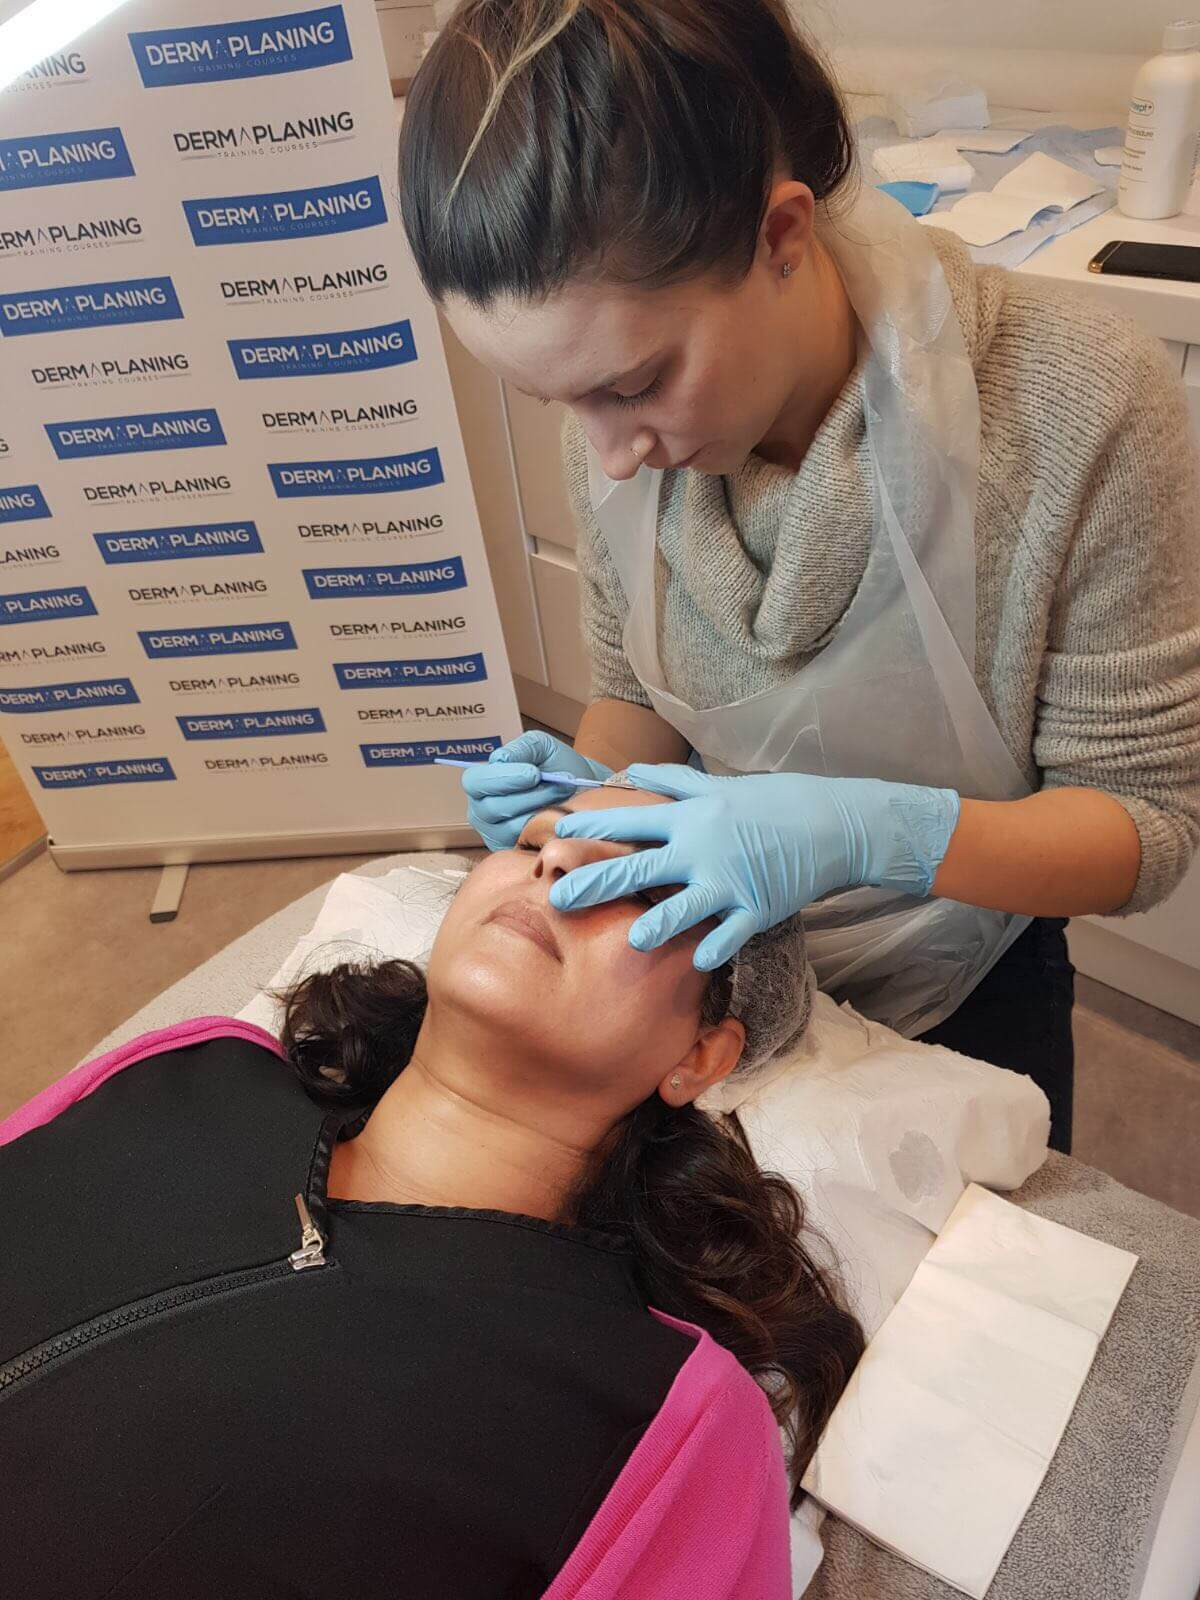 dermaplaning-training-2-yorkshire